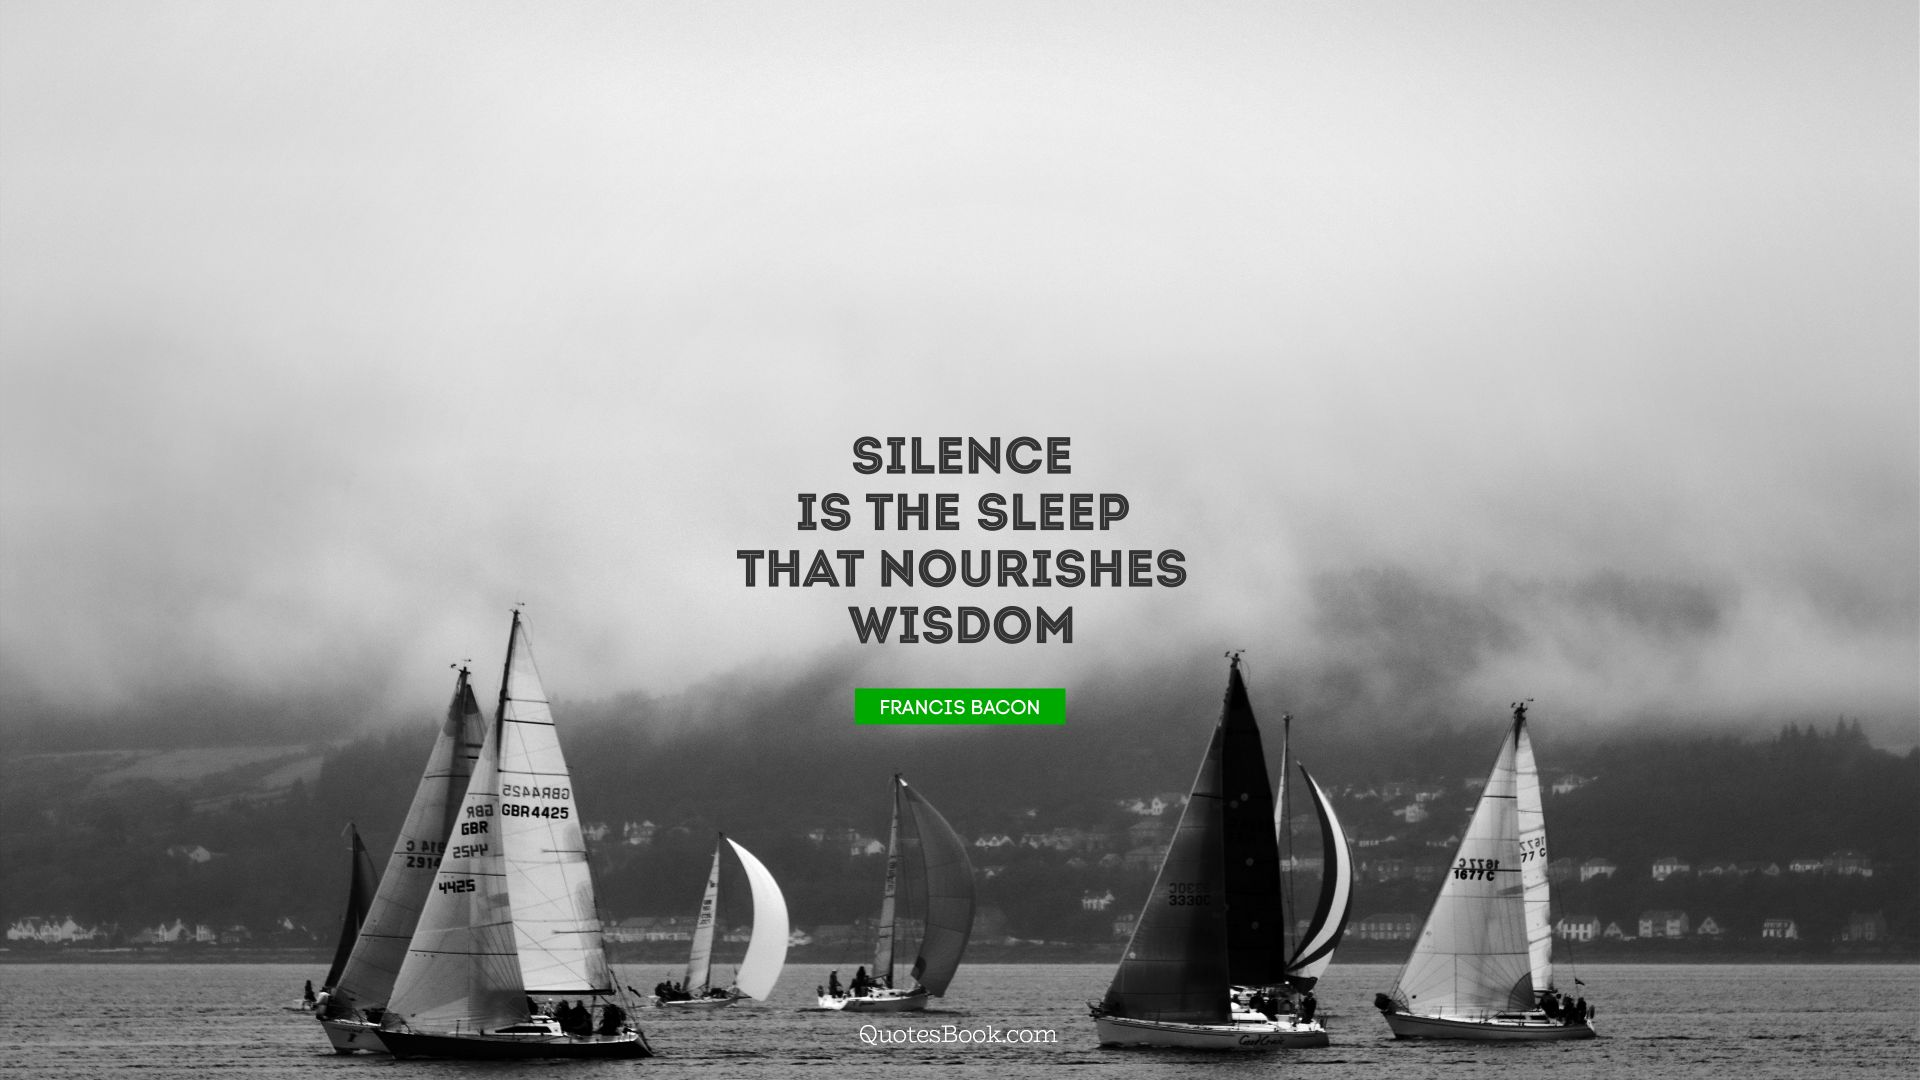 Silence is the sleep that nourishes wisdom. - Quote by Francis Bacon